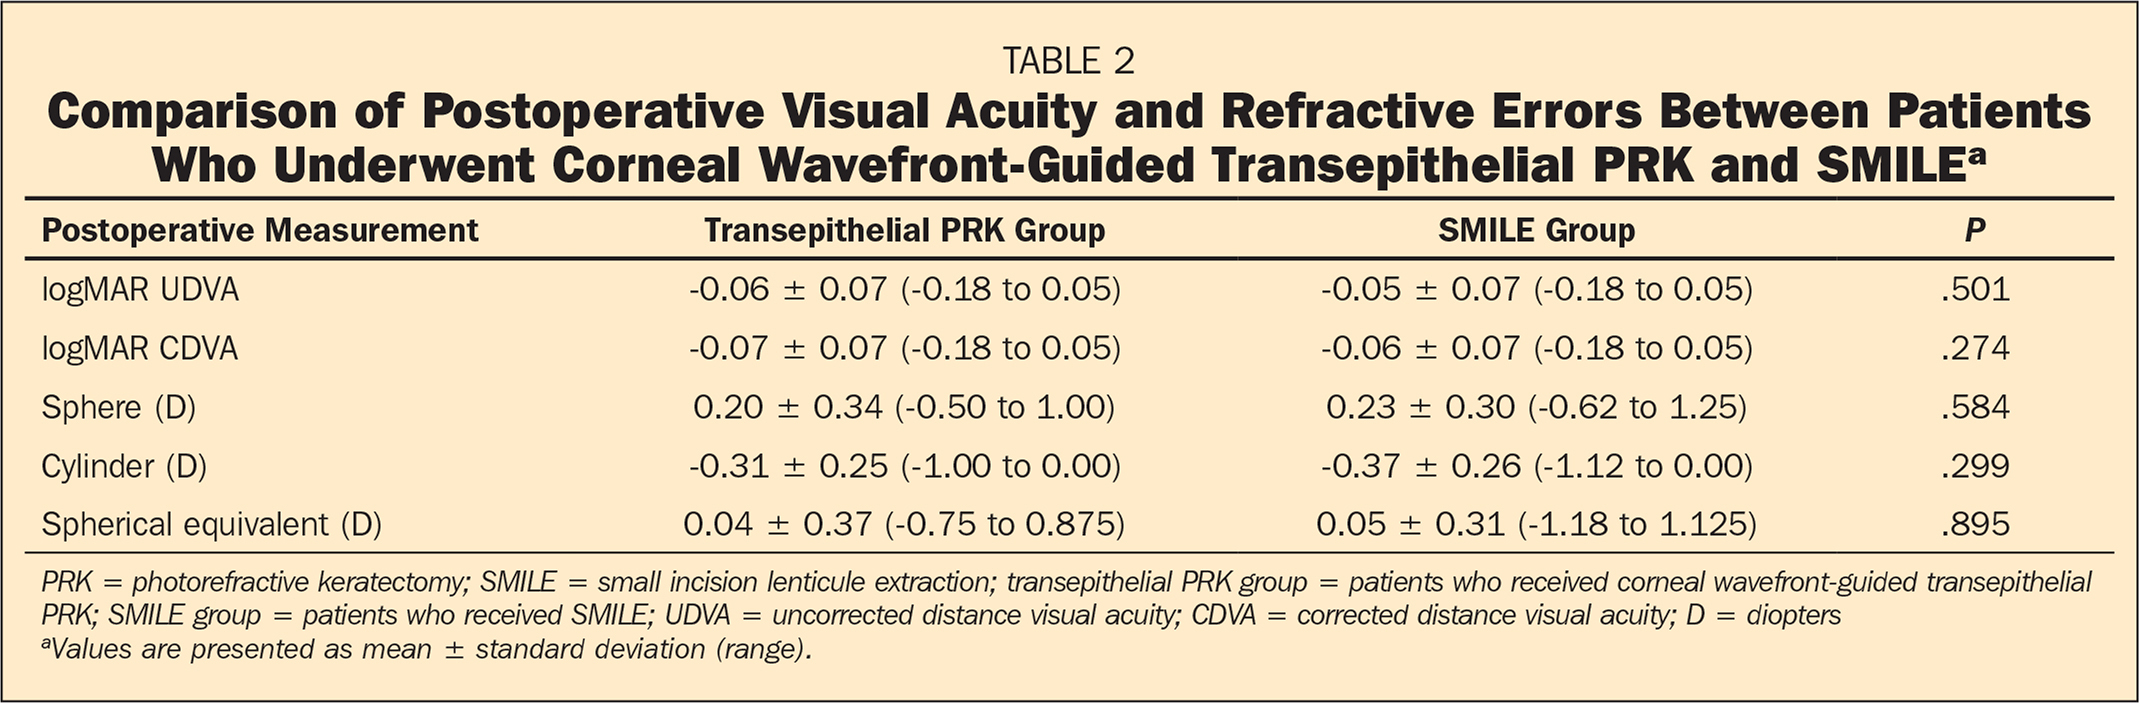 Comparison of Postoperative Visual Acuity and Refractive Errors Between Patients Who Underwent Corneal Wavefront-Guided Transepithelial PRK and SMILEa